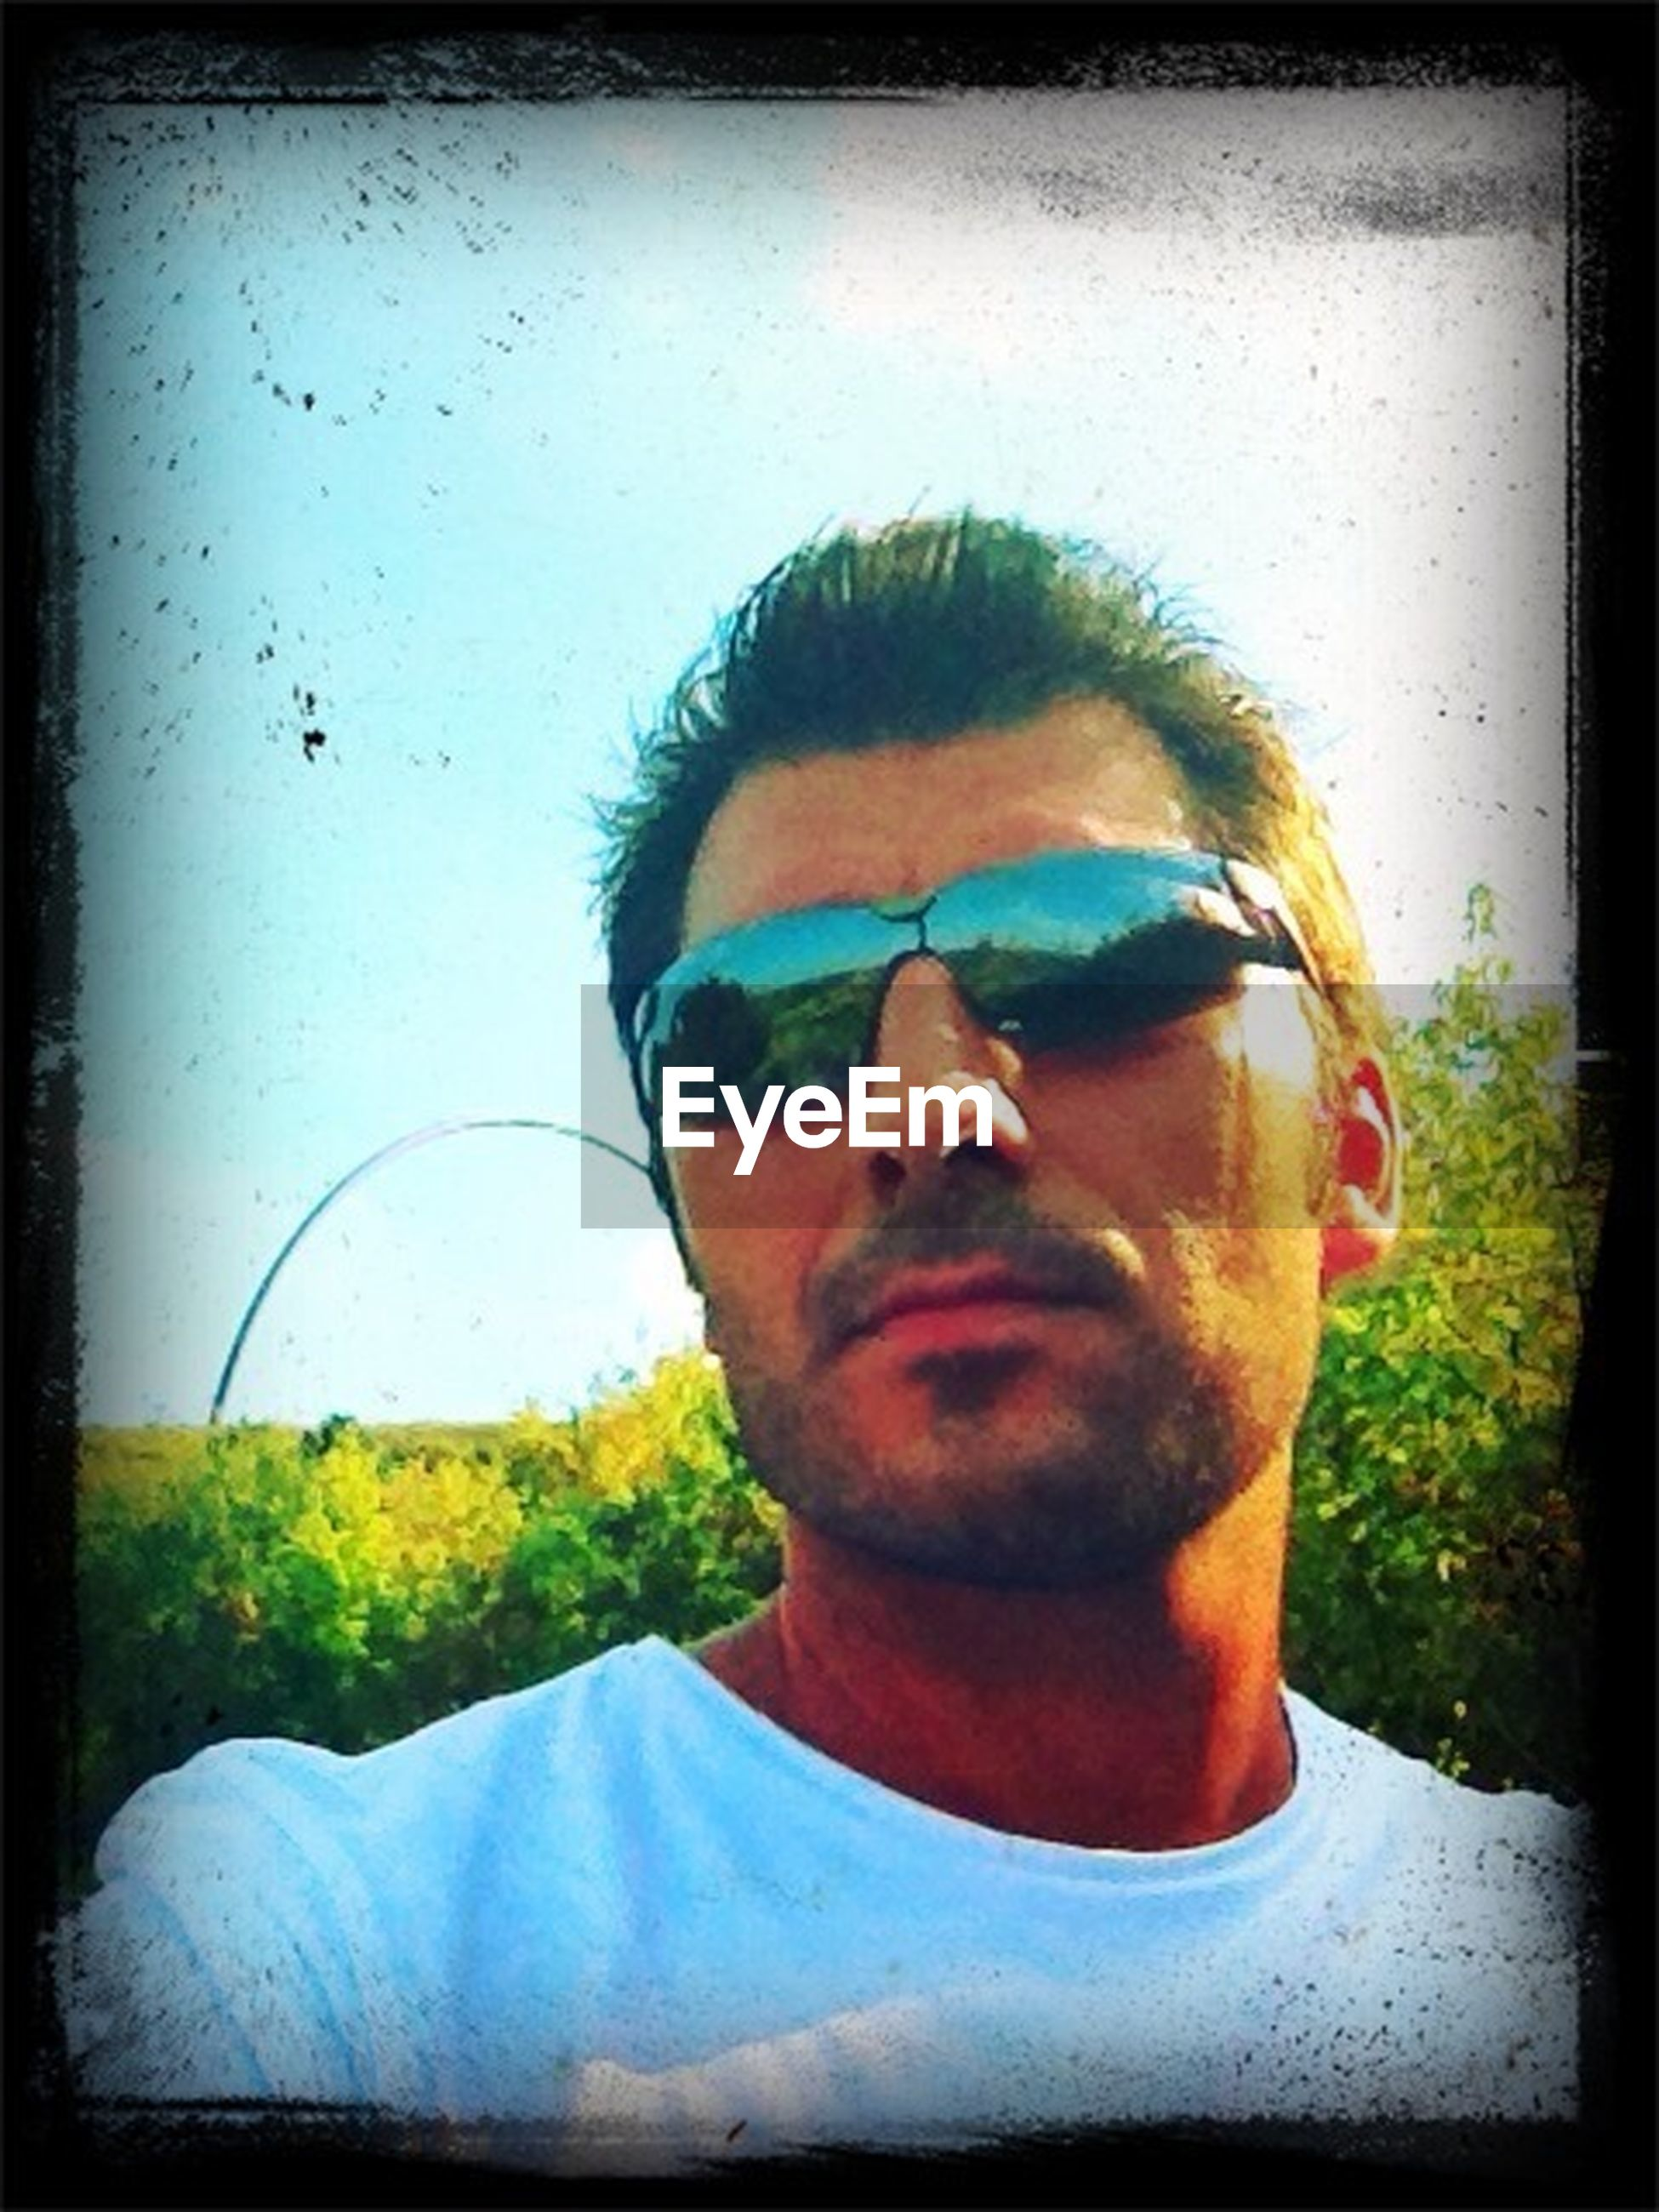 portrait, looking at camera, person, lifestyles, headshot, young adult, sunglasses, young men, leisure activity, front view, mid adult men, mid adult, head and shoulders, auto post production filter, smiling, casual clothing, close-up, transfer print